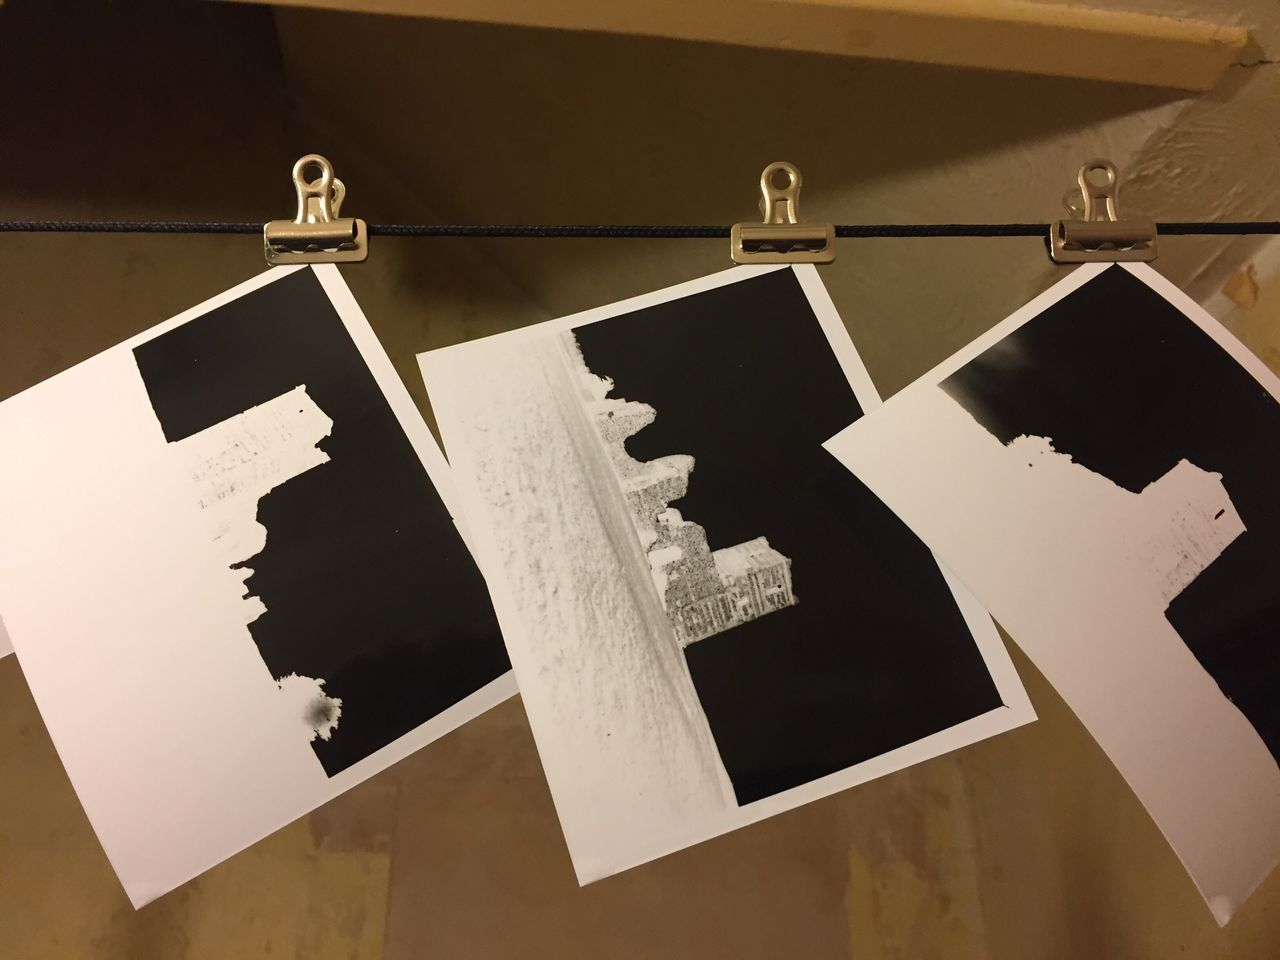 Ilford Obscura Film Photography Pinhole Photography Paper Negative Darkroom Printing